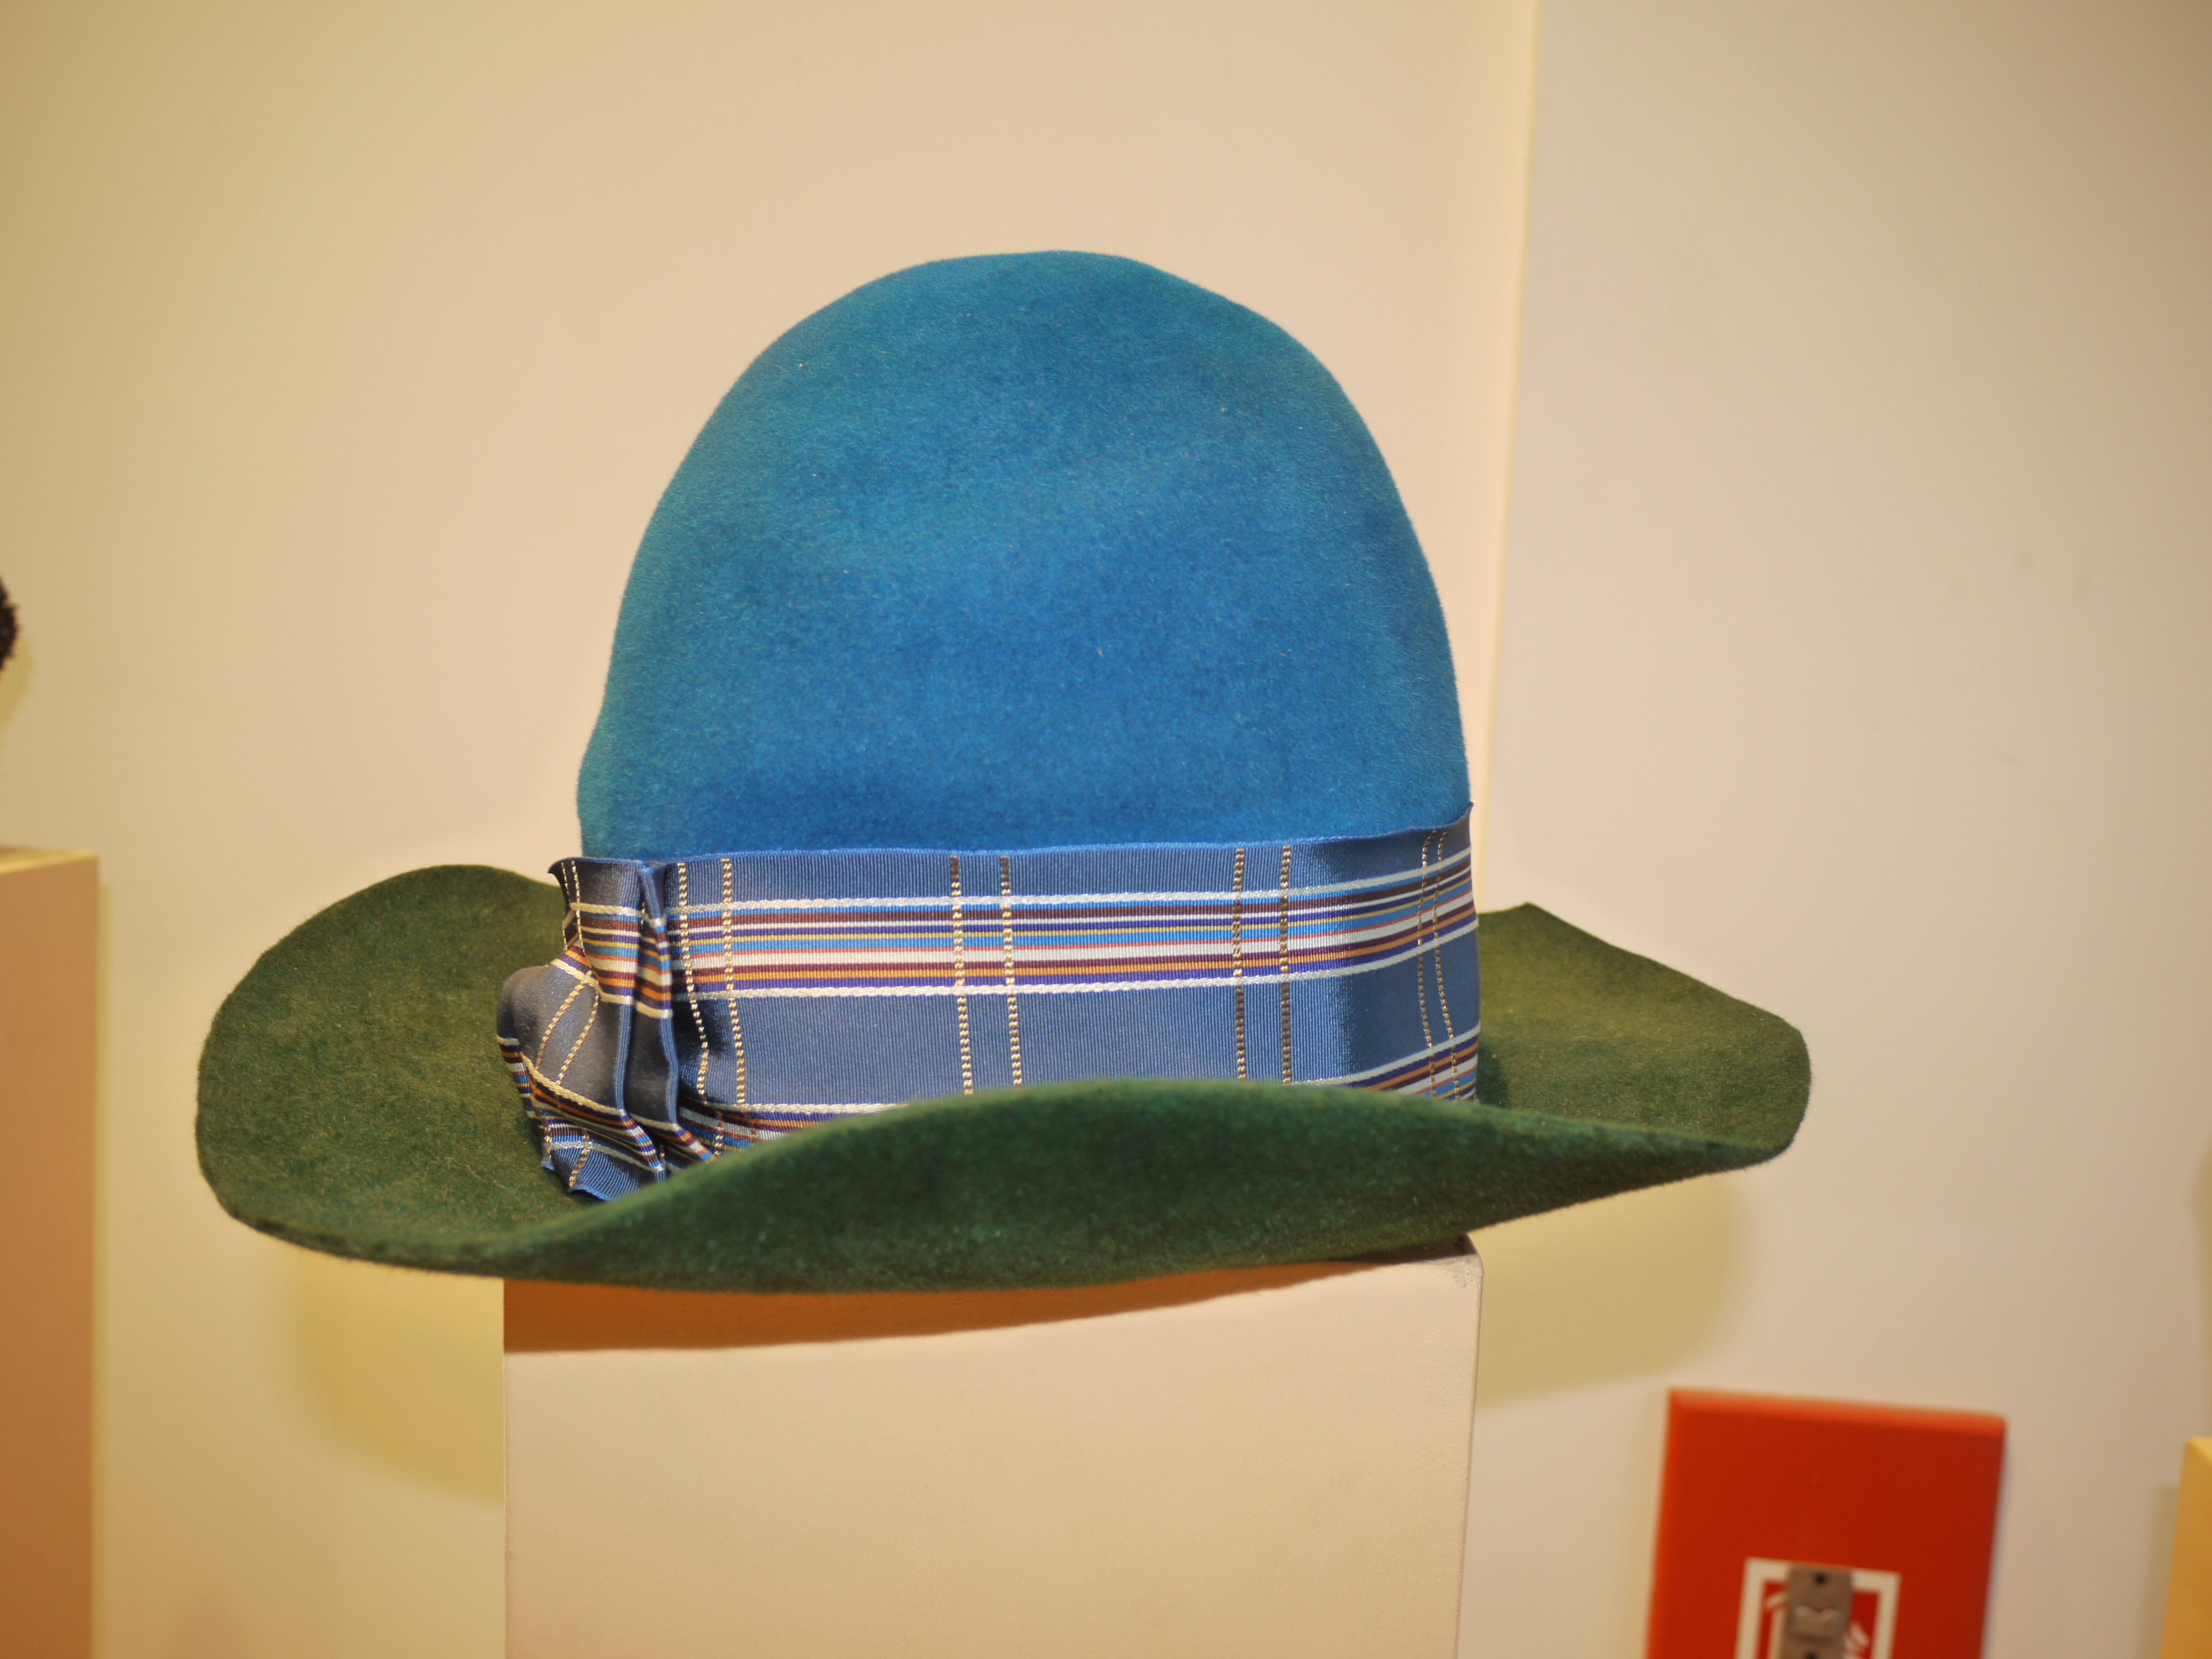 A Vivienne Westwood early 80s hat. Pharrell much?